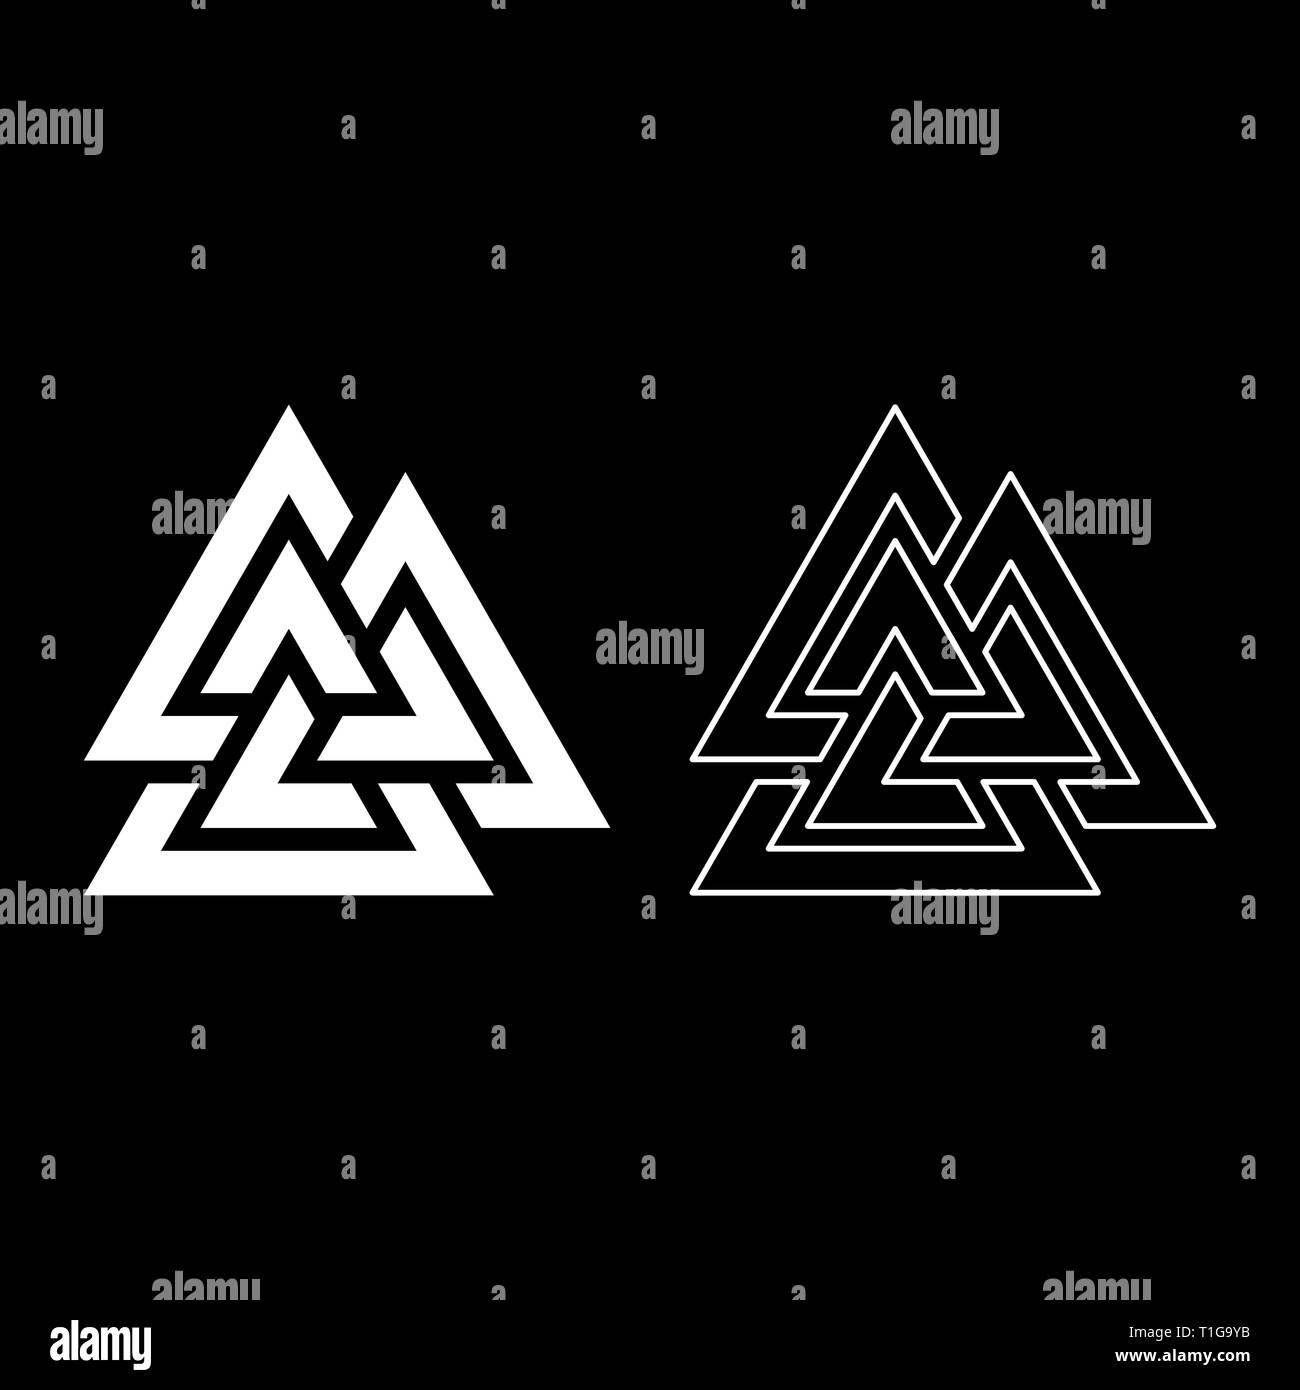 Valknut symbol icon set white color vector illustration flat style simple image - Stock Vector